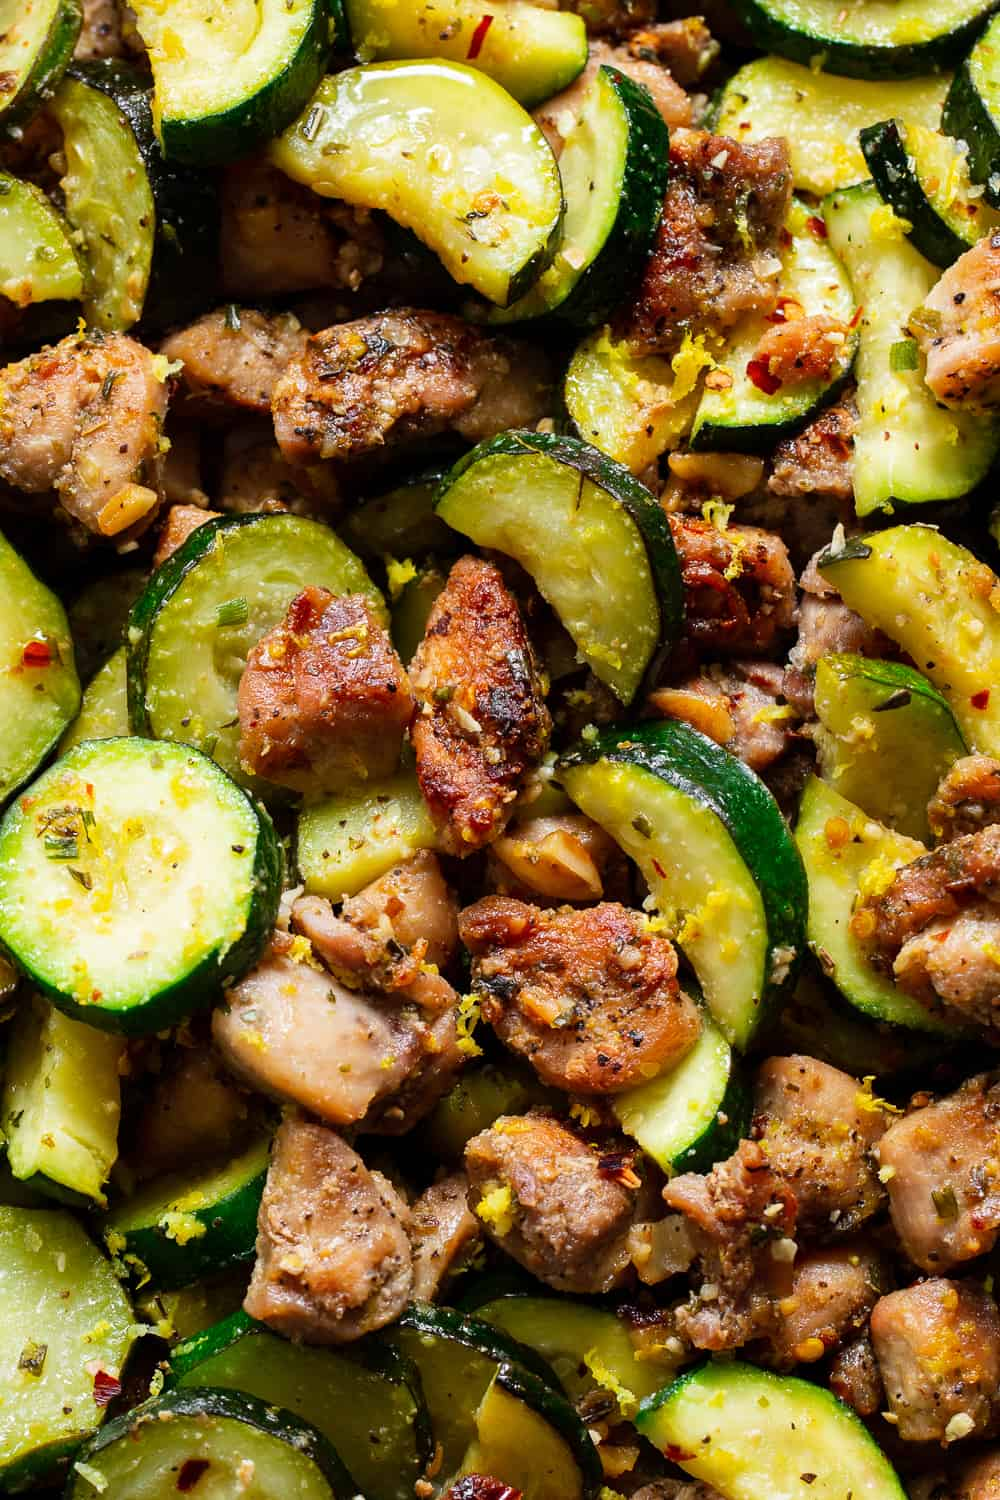 This Lemon Garlic Chicken Zucchini is packed with flavor, fast and easy for weeknights! Bite sized chicken thighs are perfectly seasoned and sautéed with zucchini and garlic then tossed with lemon juice and zest. Great alone or served over grain free noodles or cauliflower rice to keep it paleo, keto and Whole30. #paleo #whole30 #keto #cleaneating